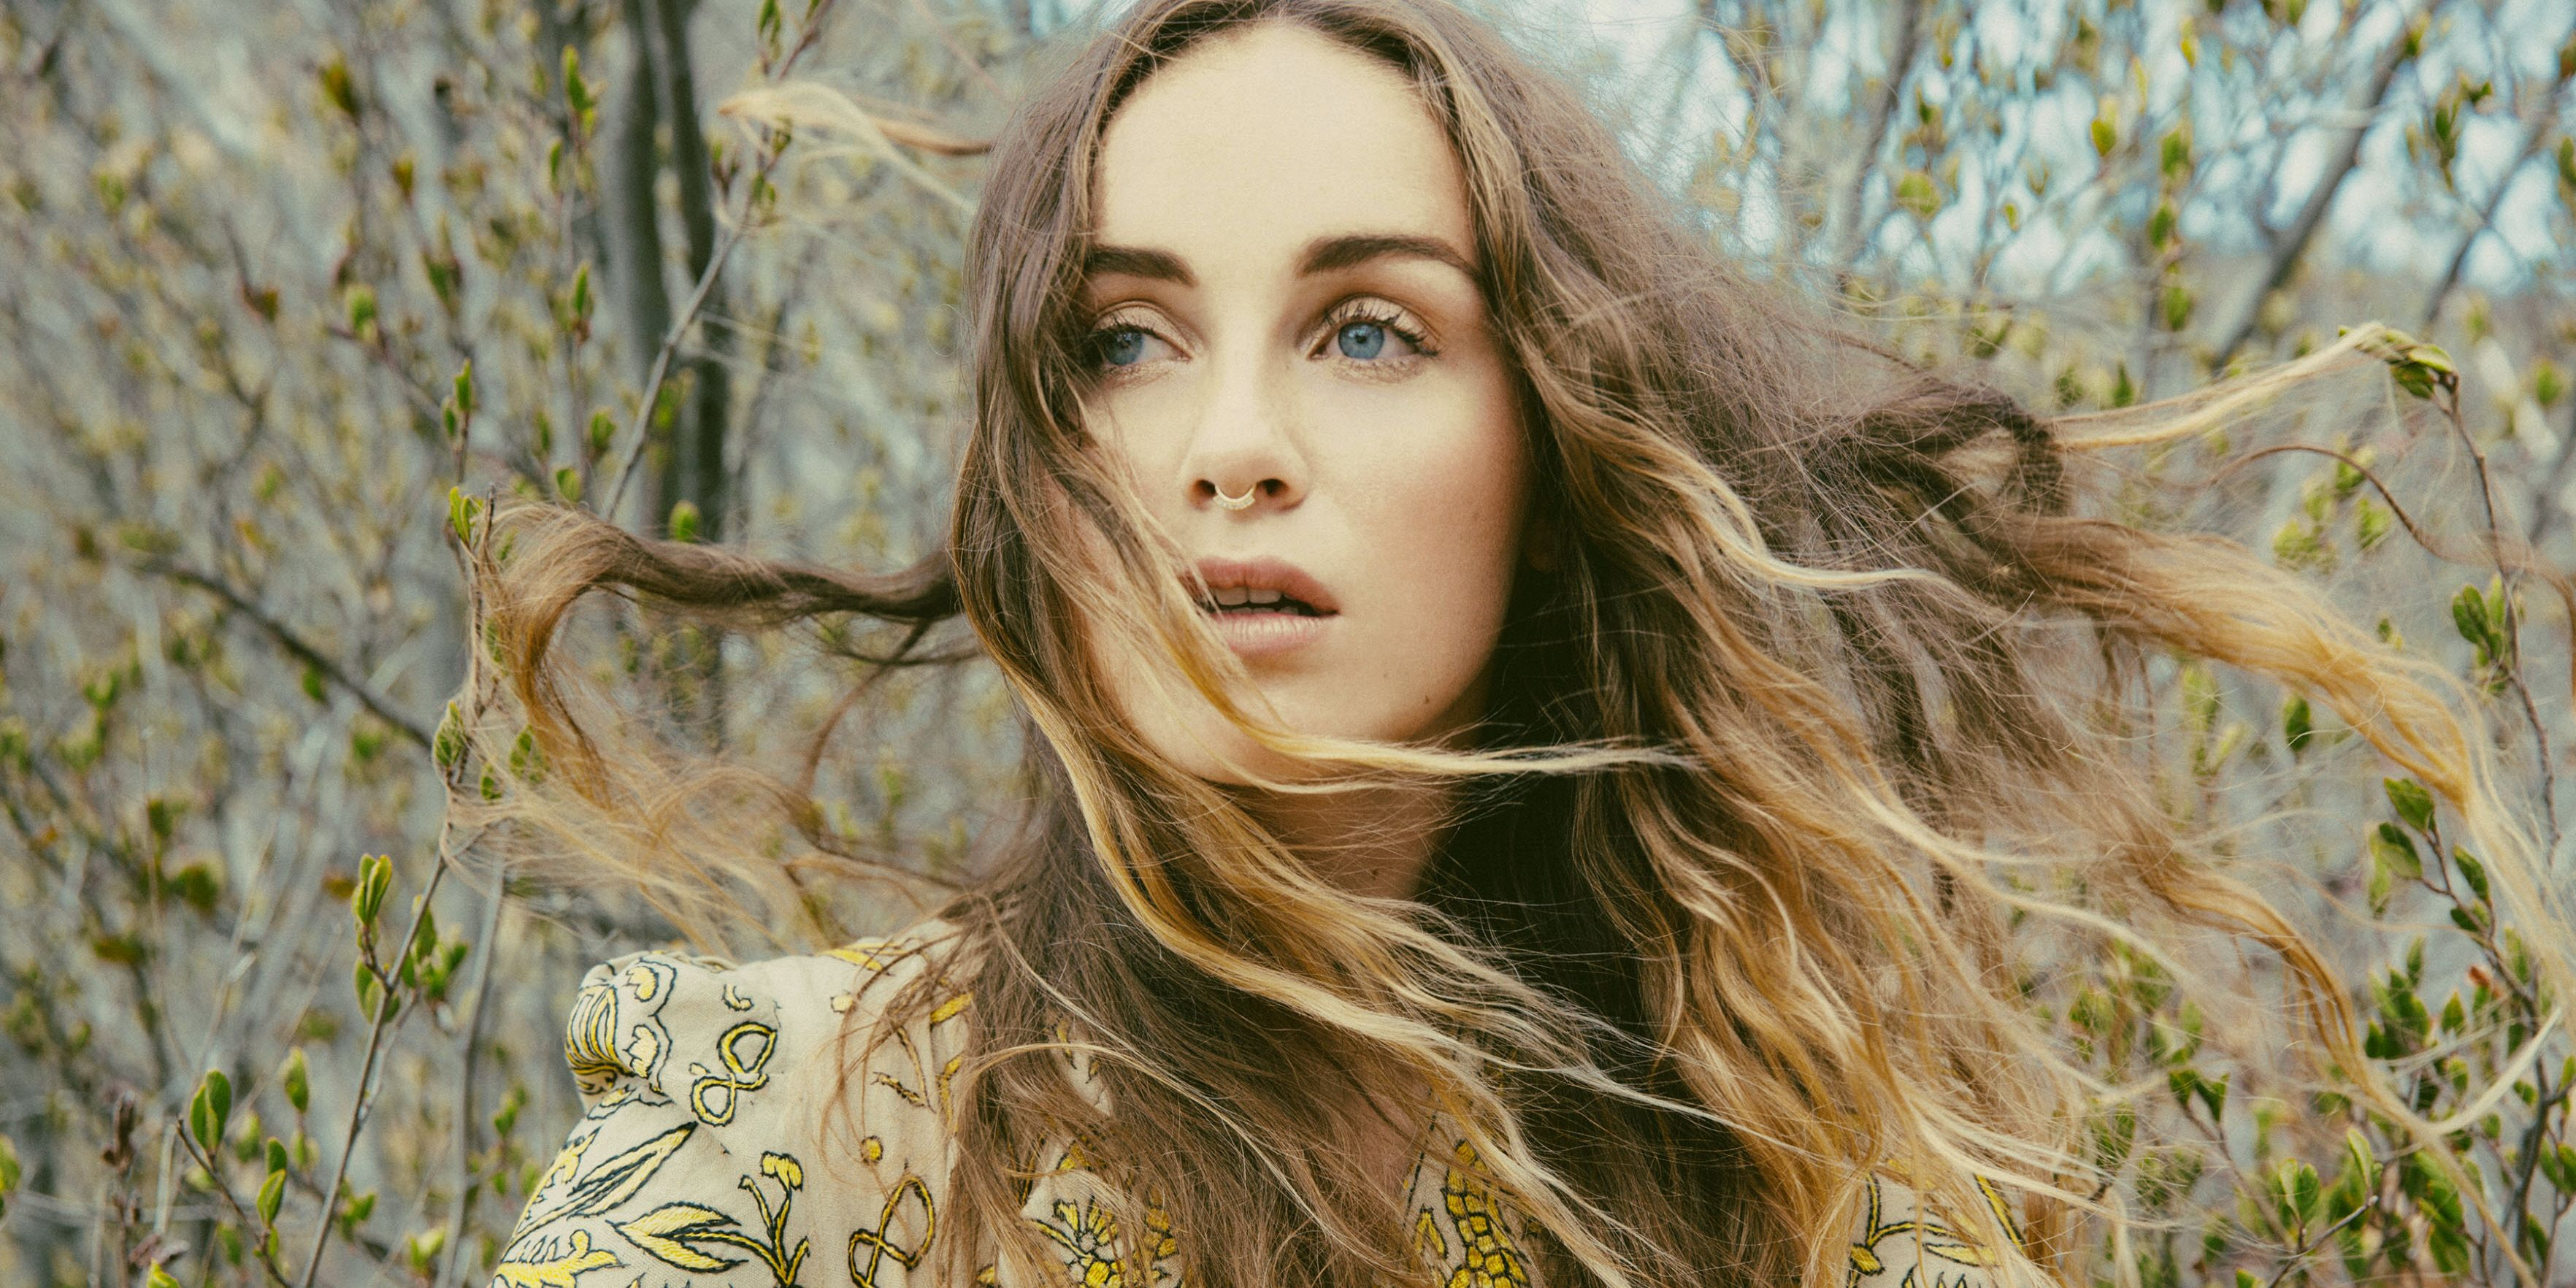 Small town Arizona-native Zella Day is a 20-year-old indie-pop singer with  5 albums already under her belt. Signed to Hollywood Records, Zella  released her ...